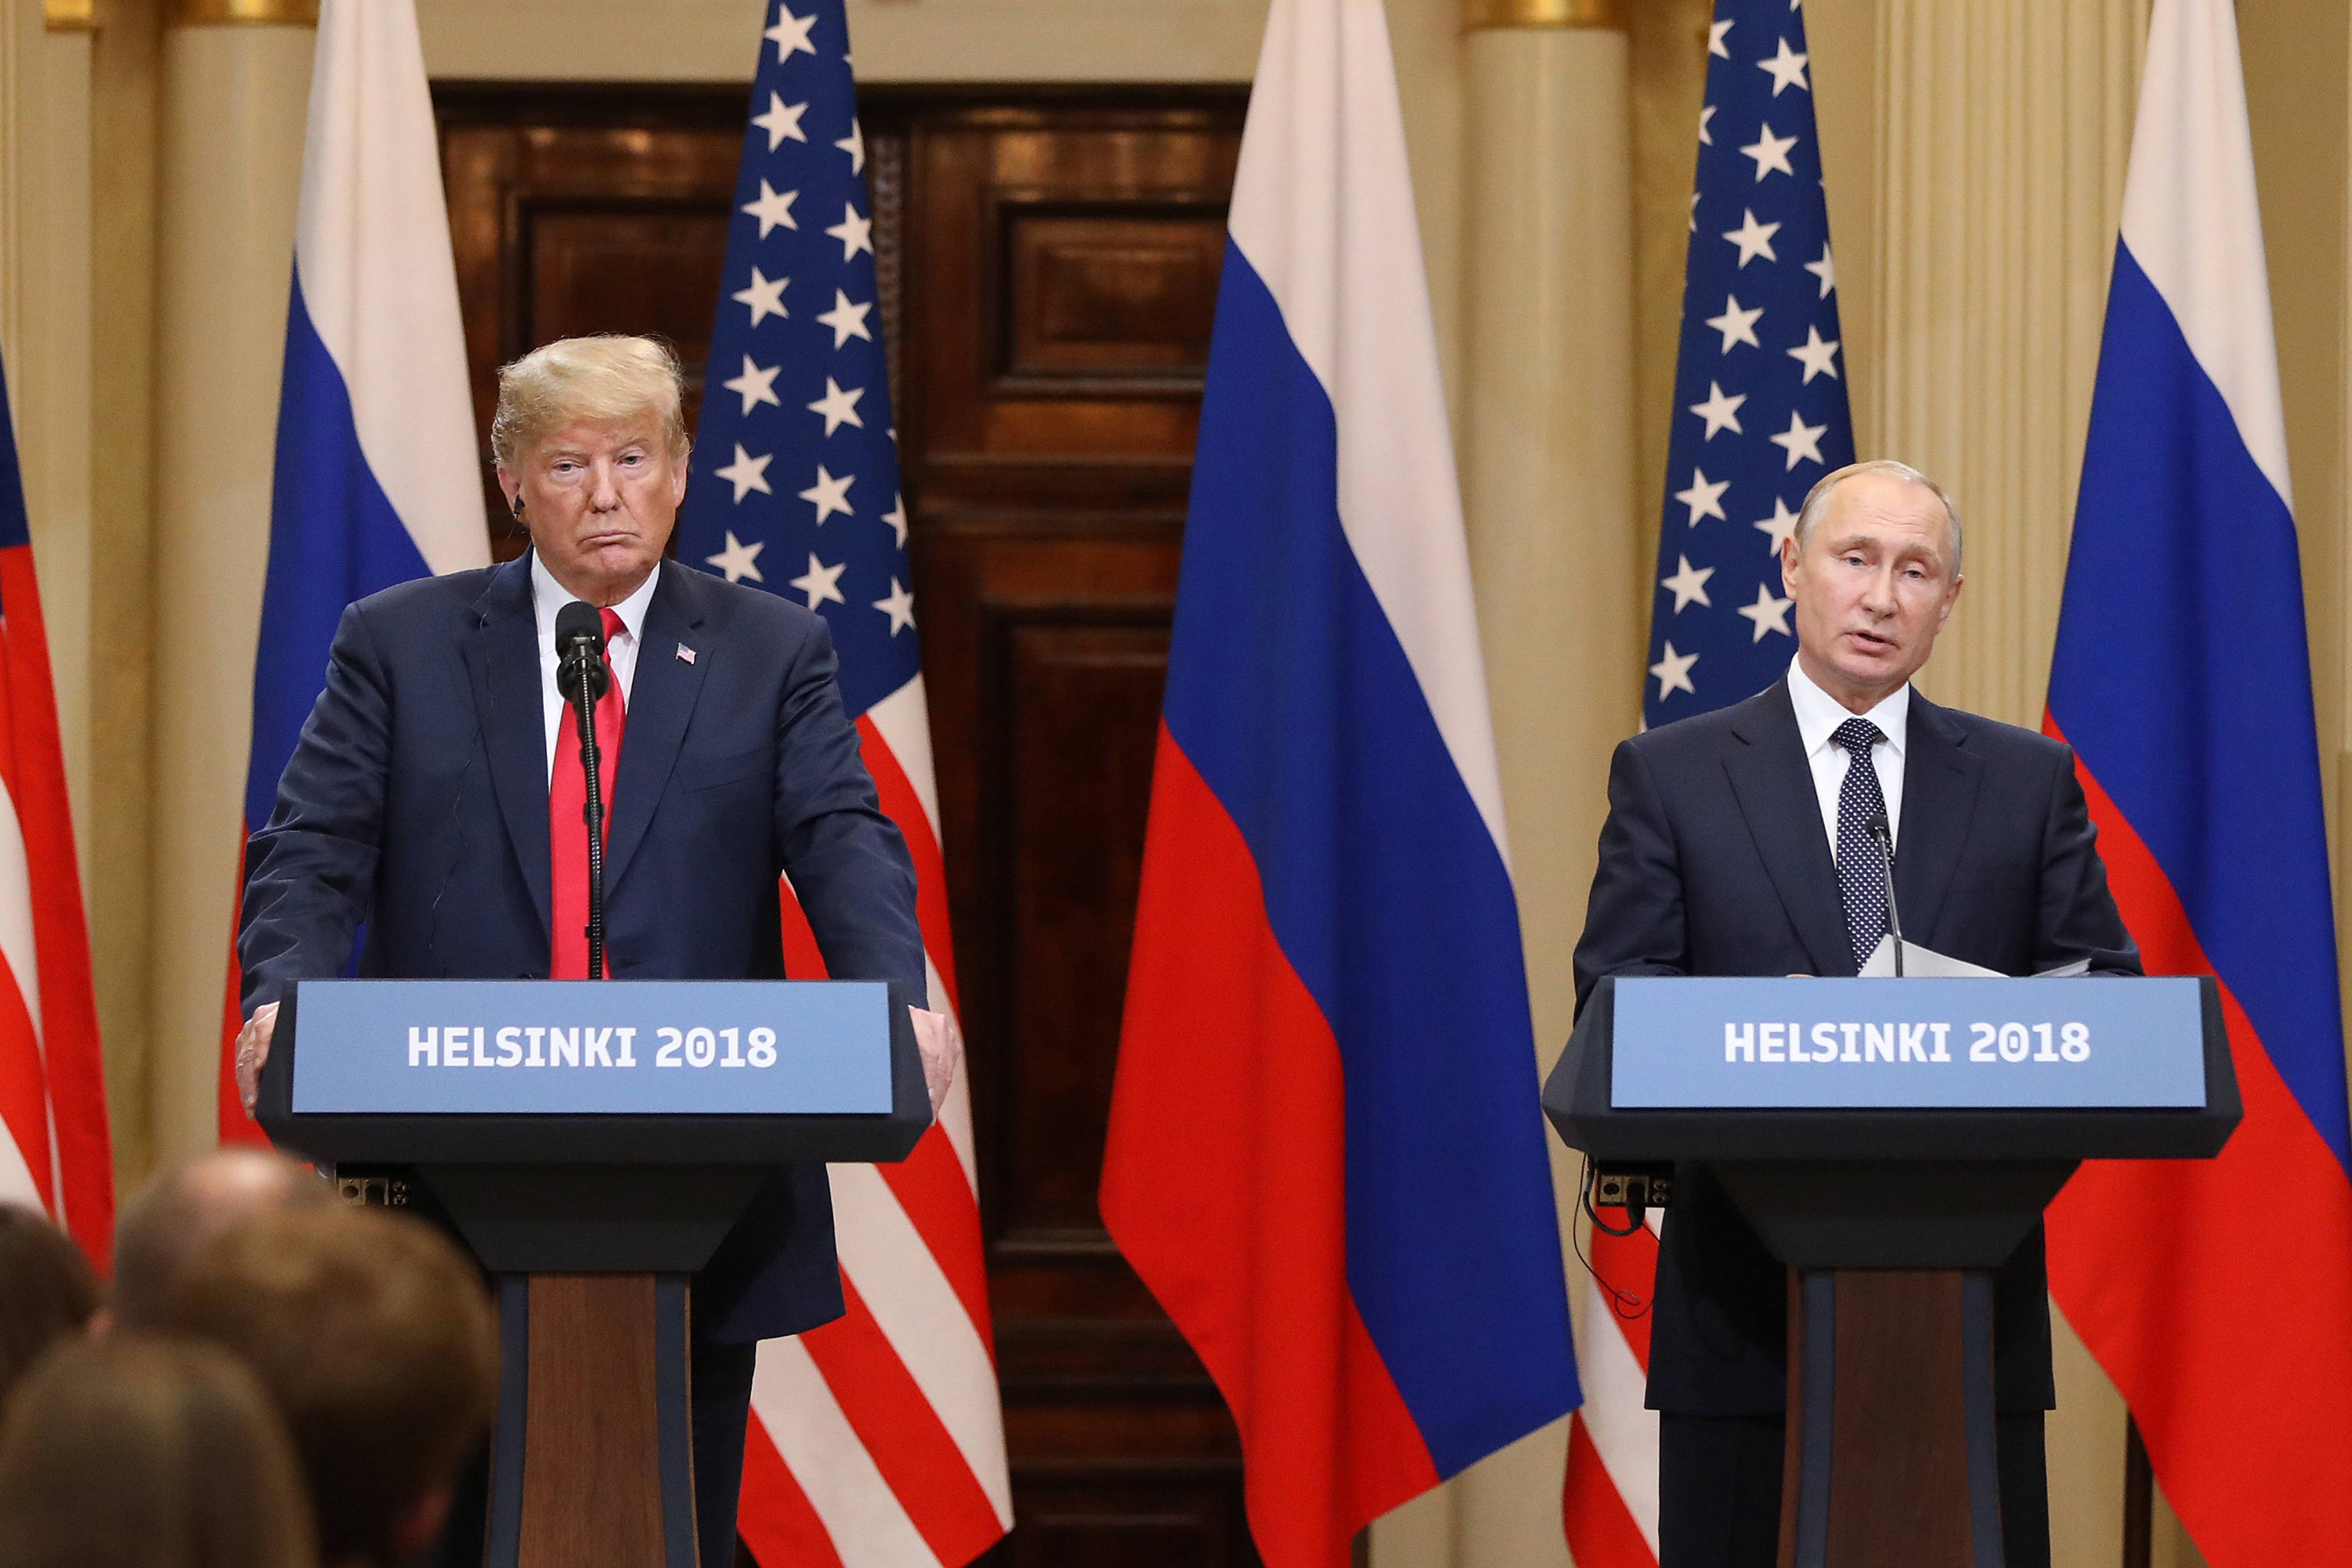 Trump and Putin end historic summit that Trump says 'changed' bad relations